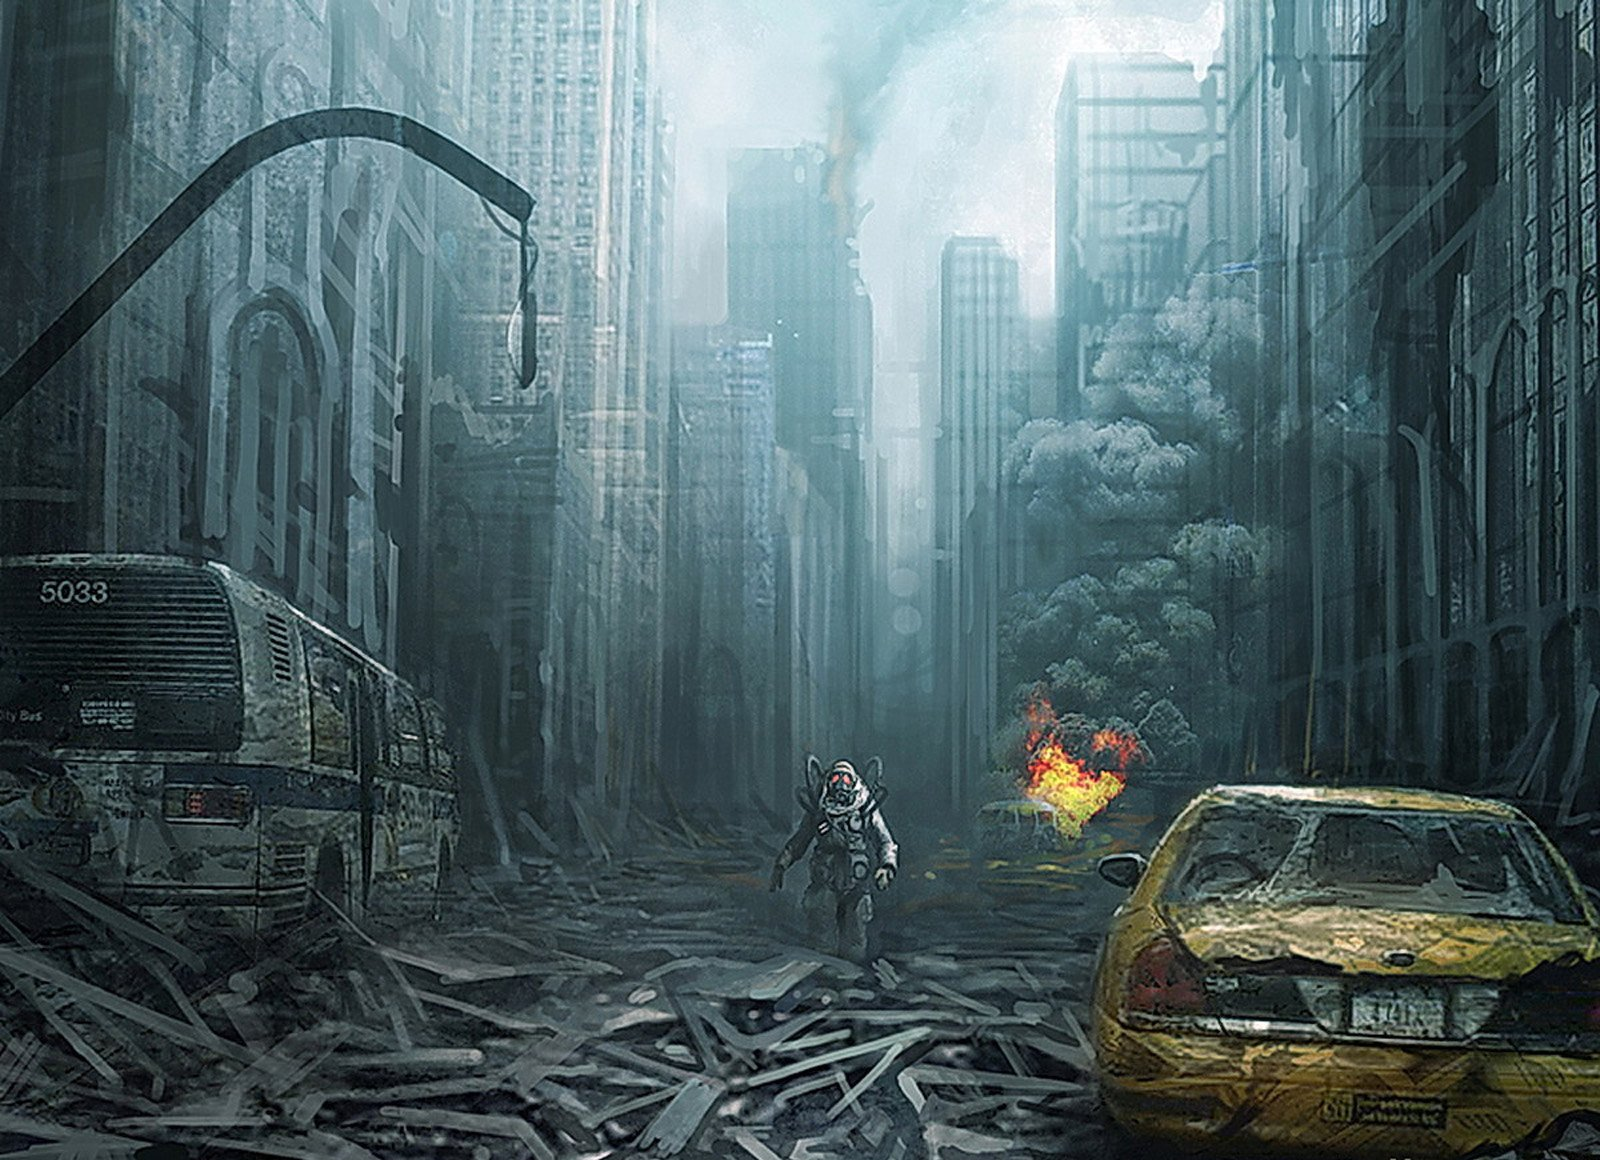 Apocalypse Background Hd 108 images in Collection Page 2 1600x1160